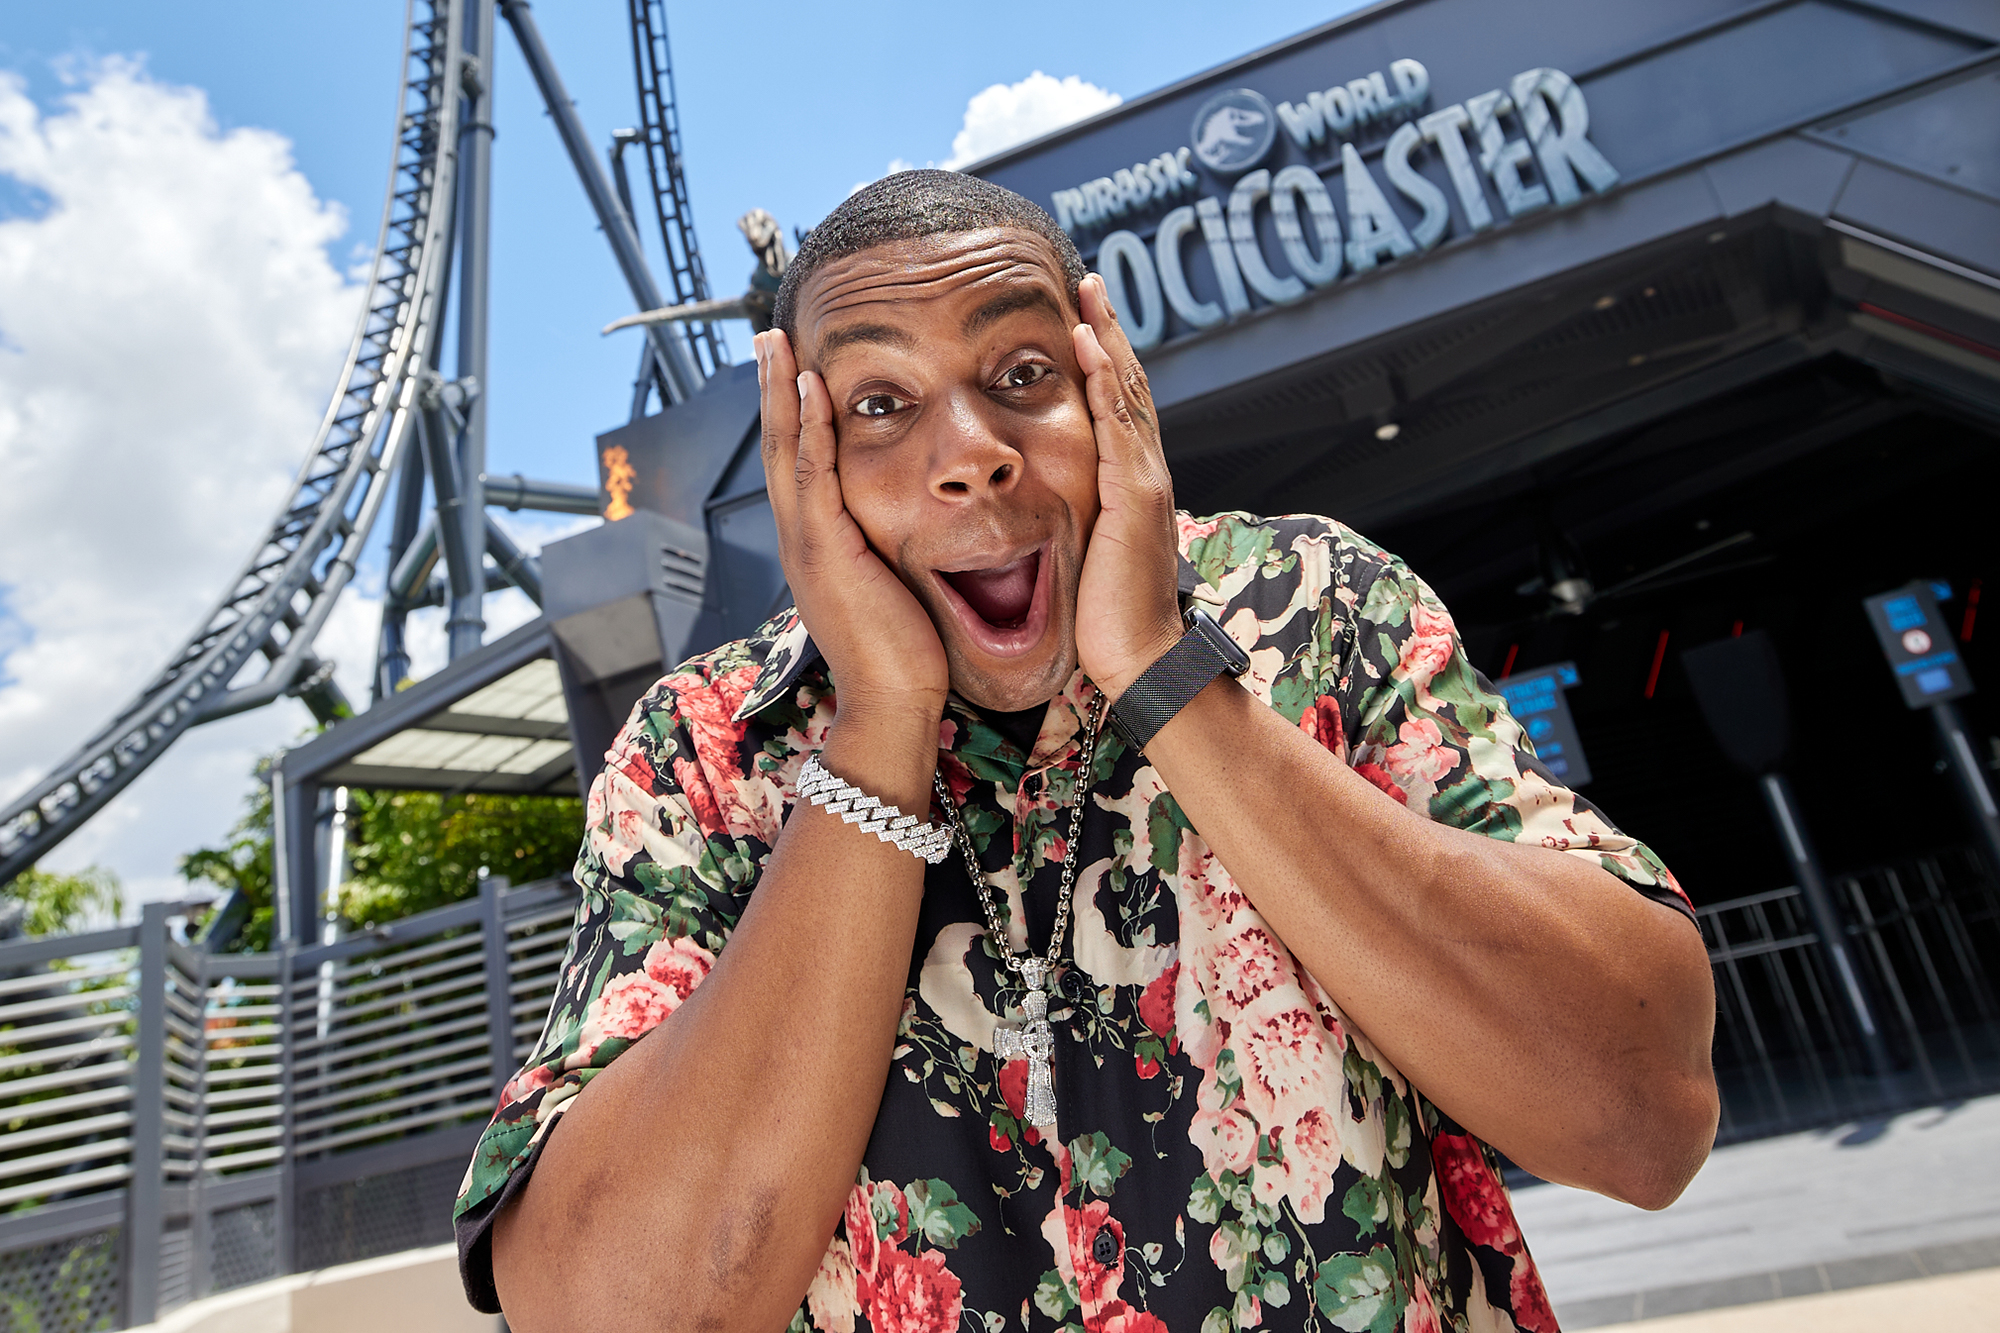 """Comedic superstar Kenan Thompson braved the hunt on the highly-anticipated all-new Jurassic World VelociCoaster, which officially opens today at Universal Orlando Resort's Islands of Adventure theme park. Thompson – a huge fan of Universal Orlando and one of the faces of the destination's """"Let Yourself Woah"""" campaign – enjoyed a preview of the mega-attraction, which catapults guests 155 feet in the air at extreme speeds of up to 70 mph while racing alongside a ferocious Velociraptor pack."""